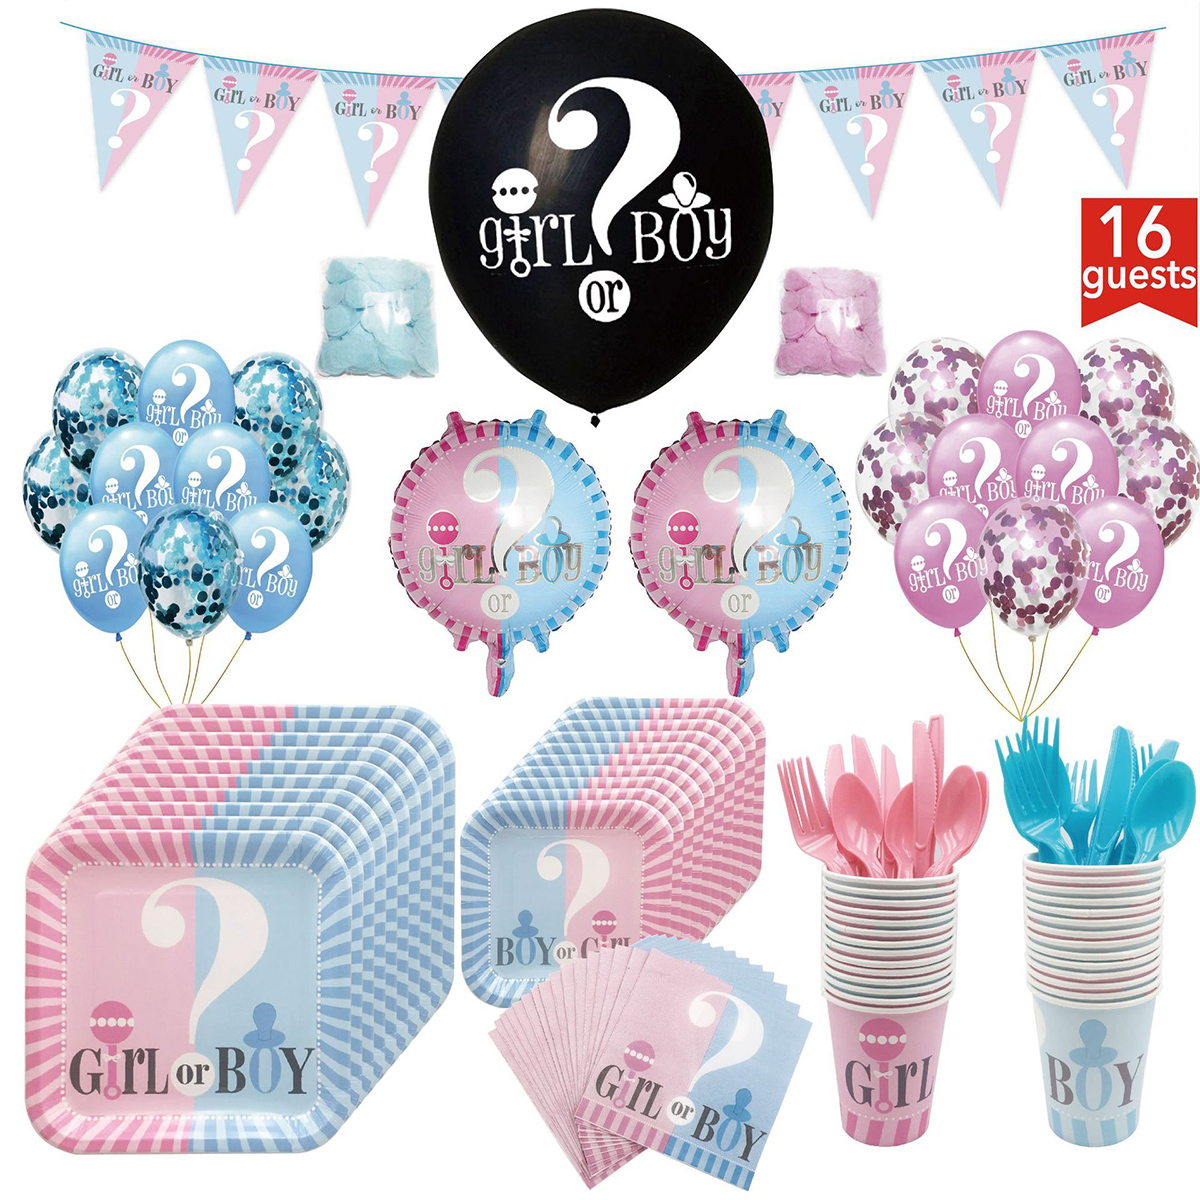 New Gender Reveal Balloon Party Supplies Gender Reveal Boy Or Girl Banner Confetti Foil Balloon Square Plate Tableware